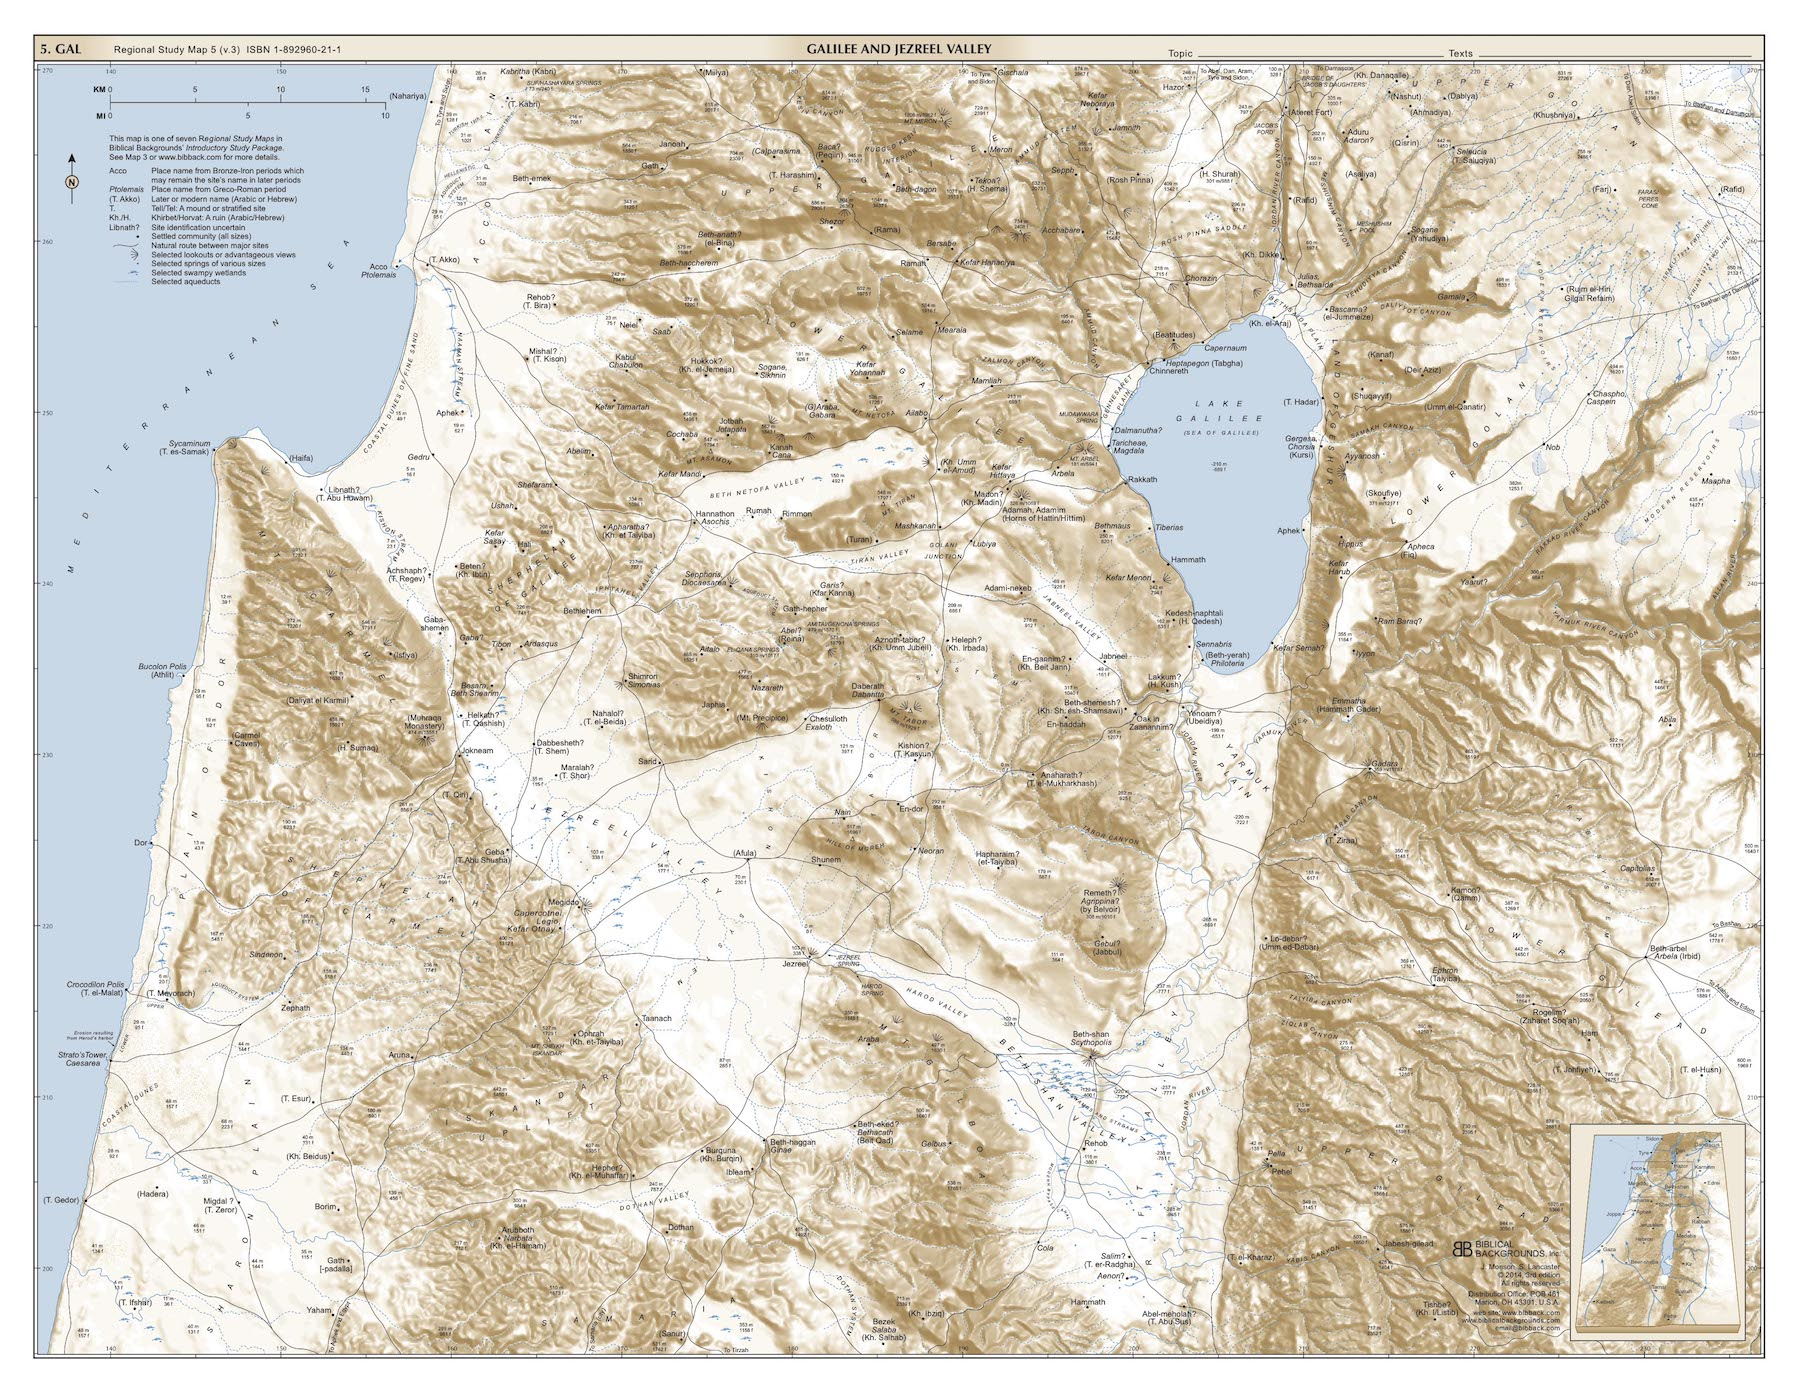 RSMap5: Galilee and Jezreel Valley